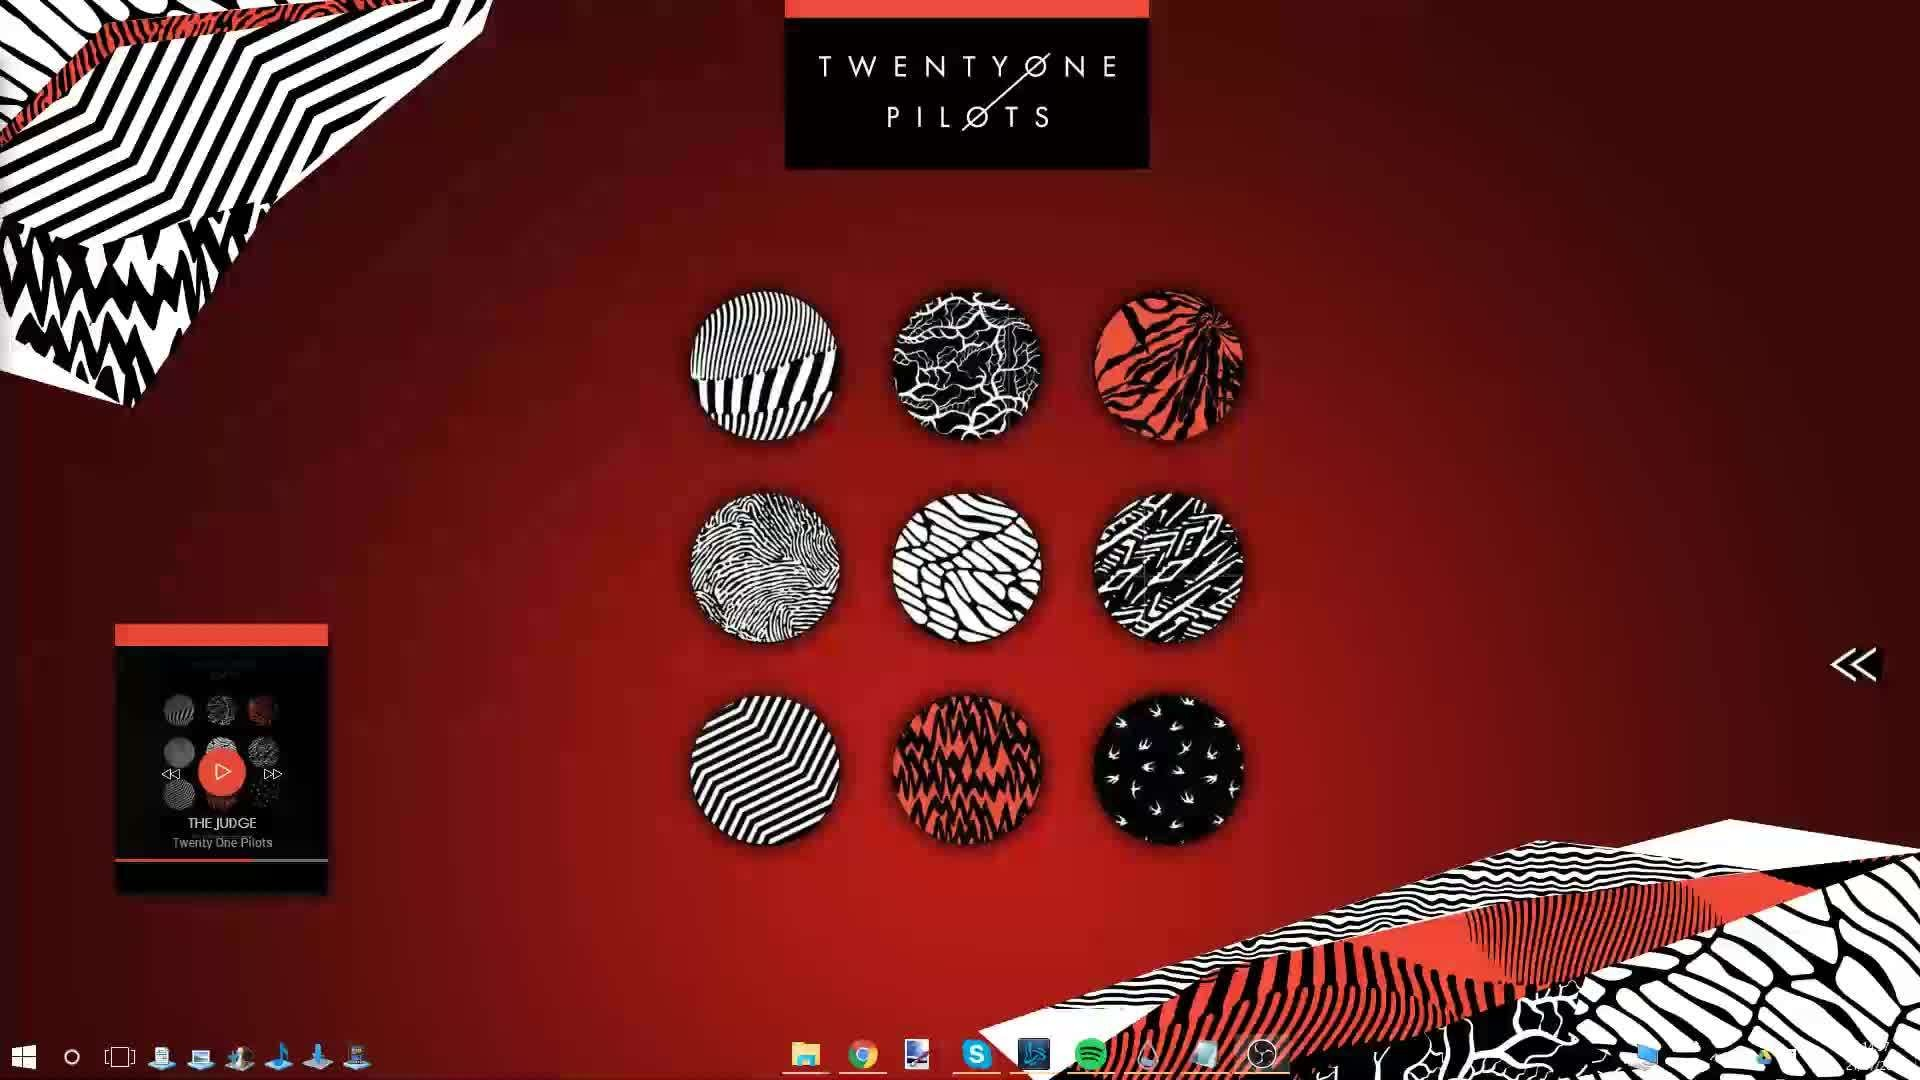 Fall Out Boy Android Wallpaper Twenty One Pilots Desktop Wallpaper 183 ① Download Free